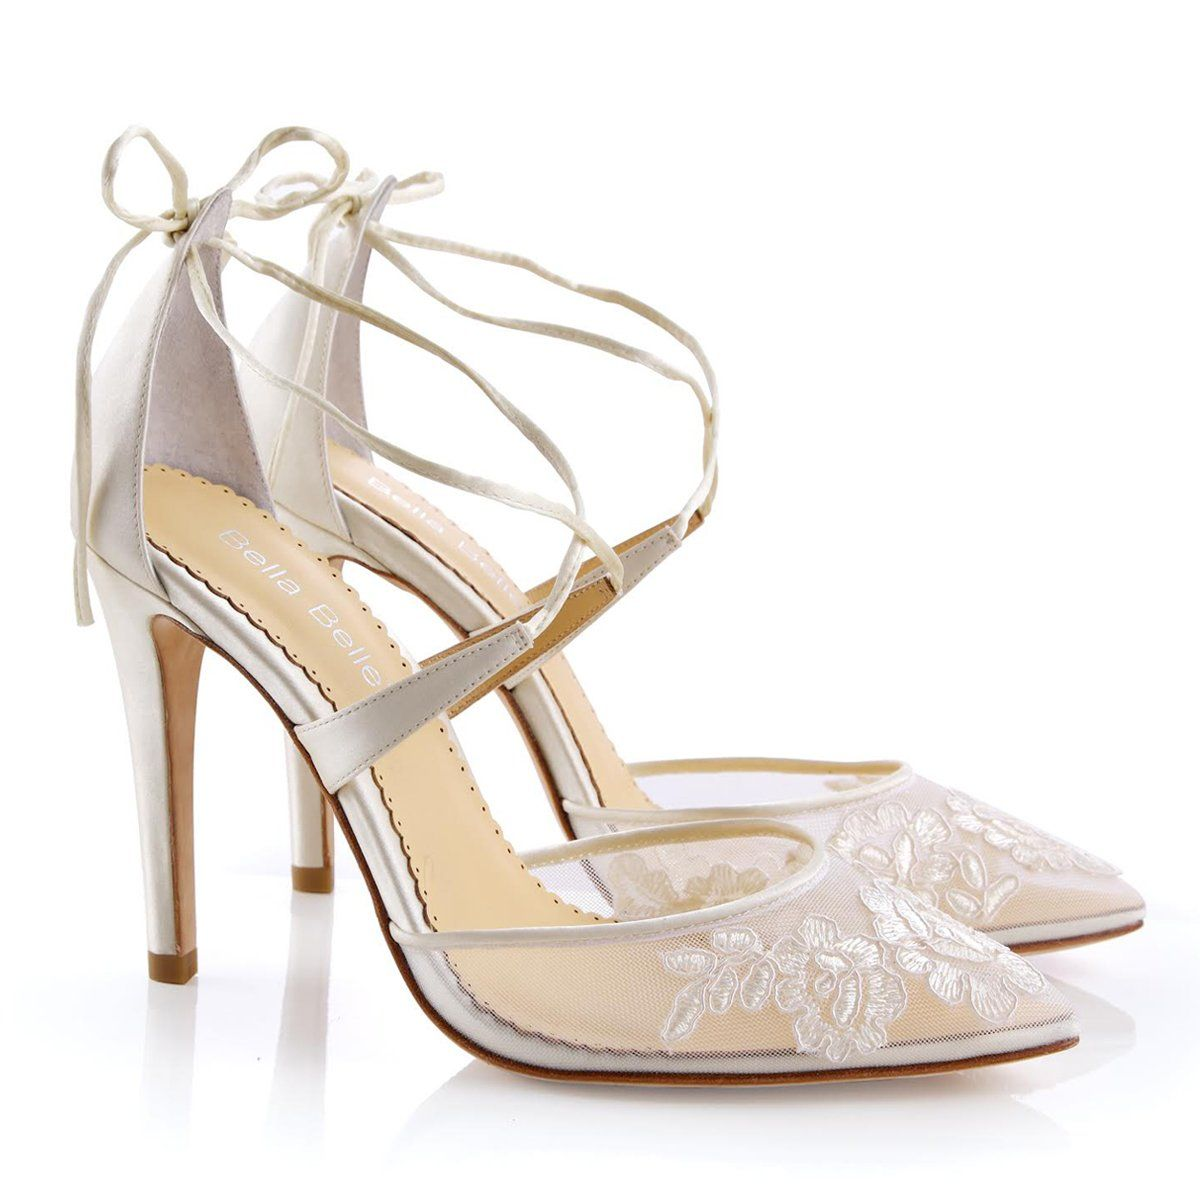 Ivory Lace Wedding Shoes In 2020 Wedding Shoes Heels Ivory Wedding Shoes Wedding Shoes Lace